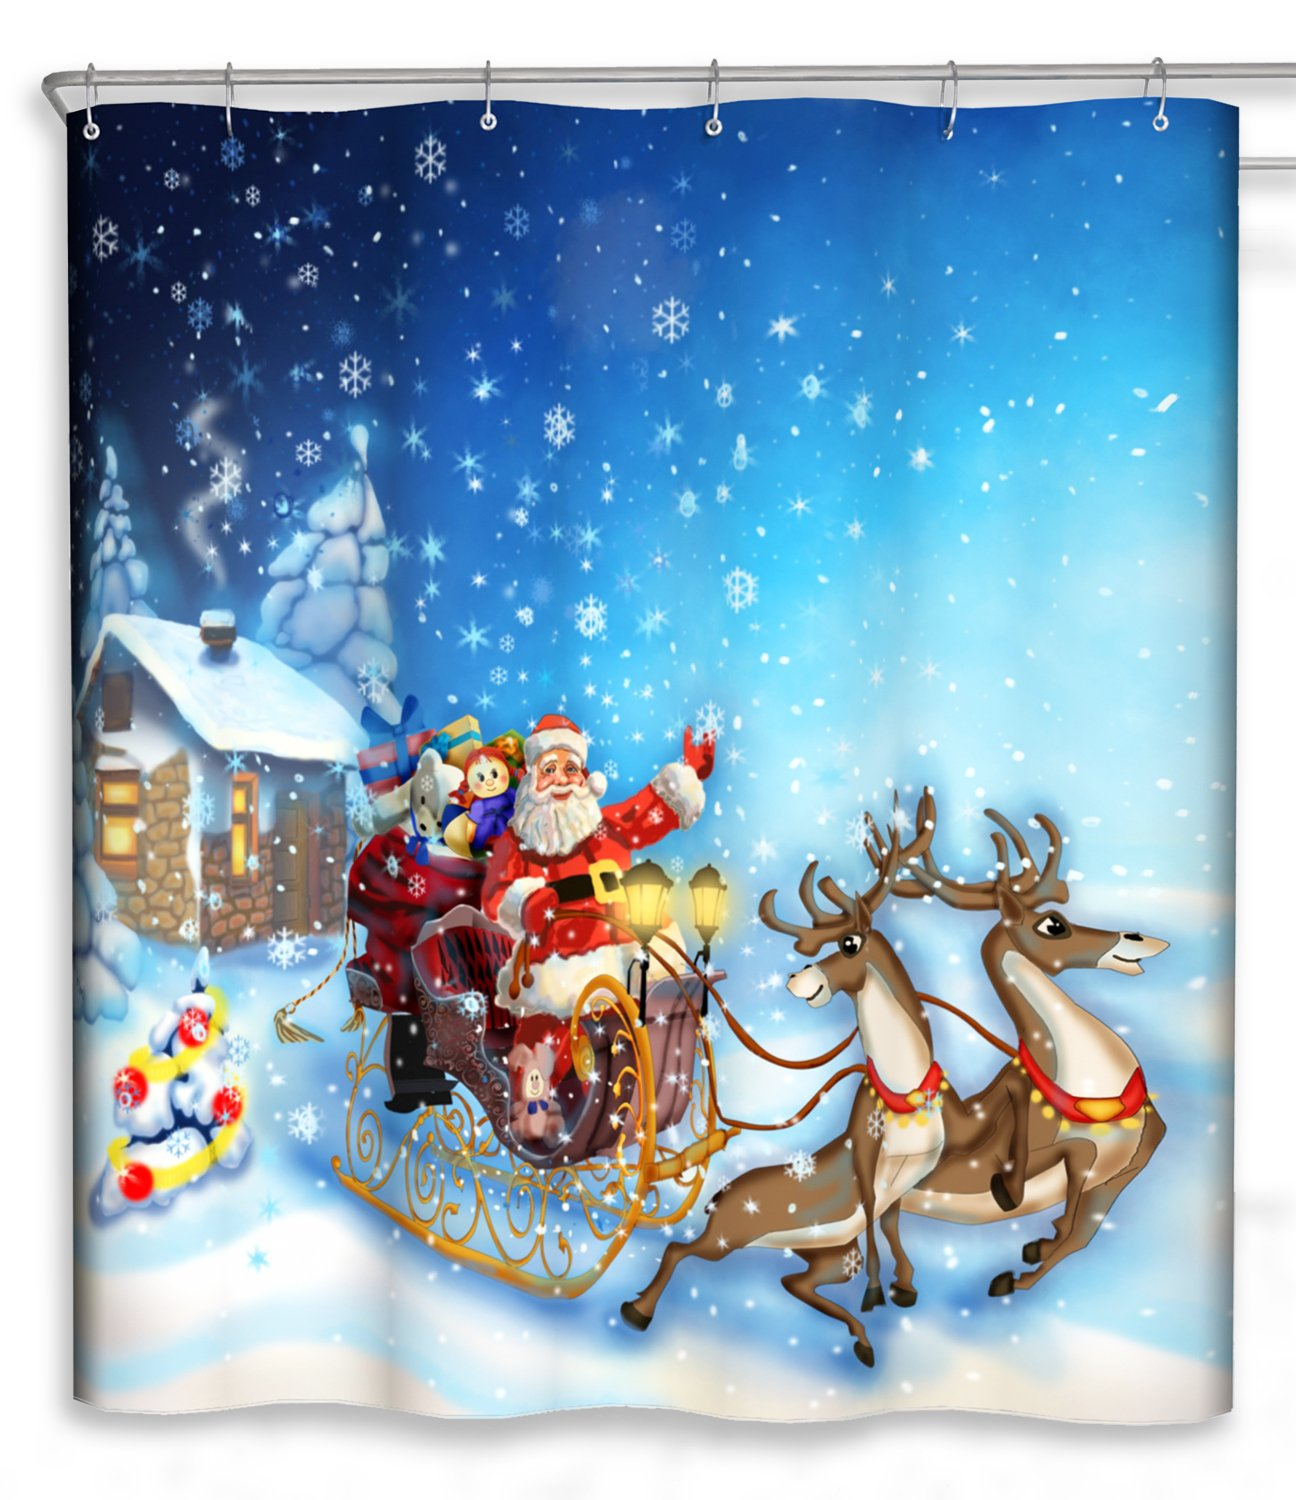 CHUN YI Merry Christmas Bathroom Decoration Polyester Fabric Shower Curtains Liner 72x72 (Christmas) LTD AX-AY-ABHI-87887